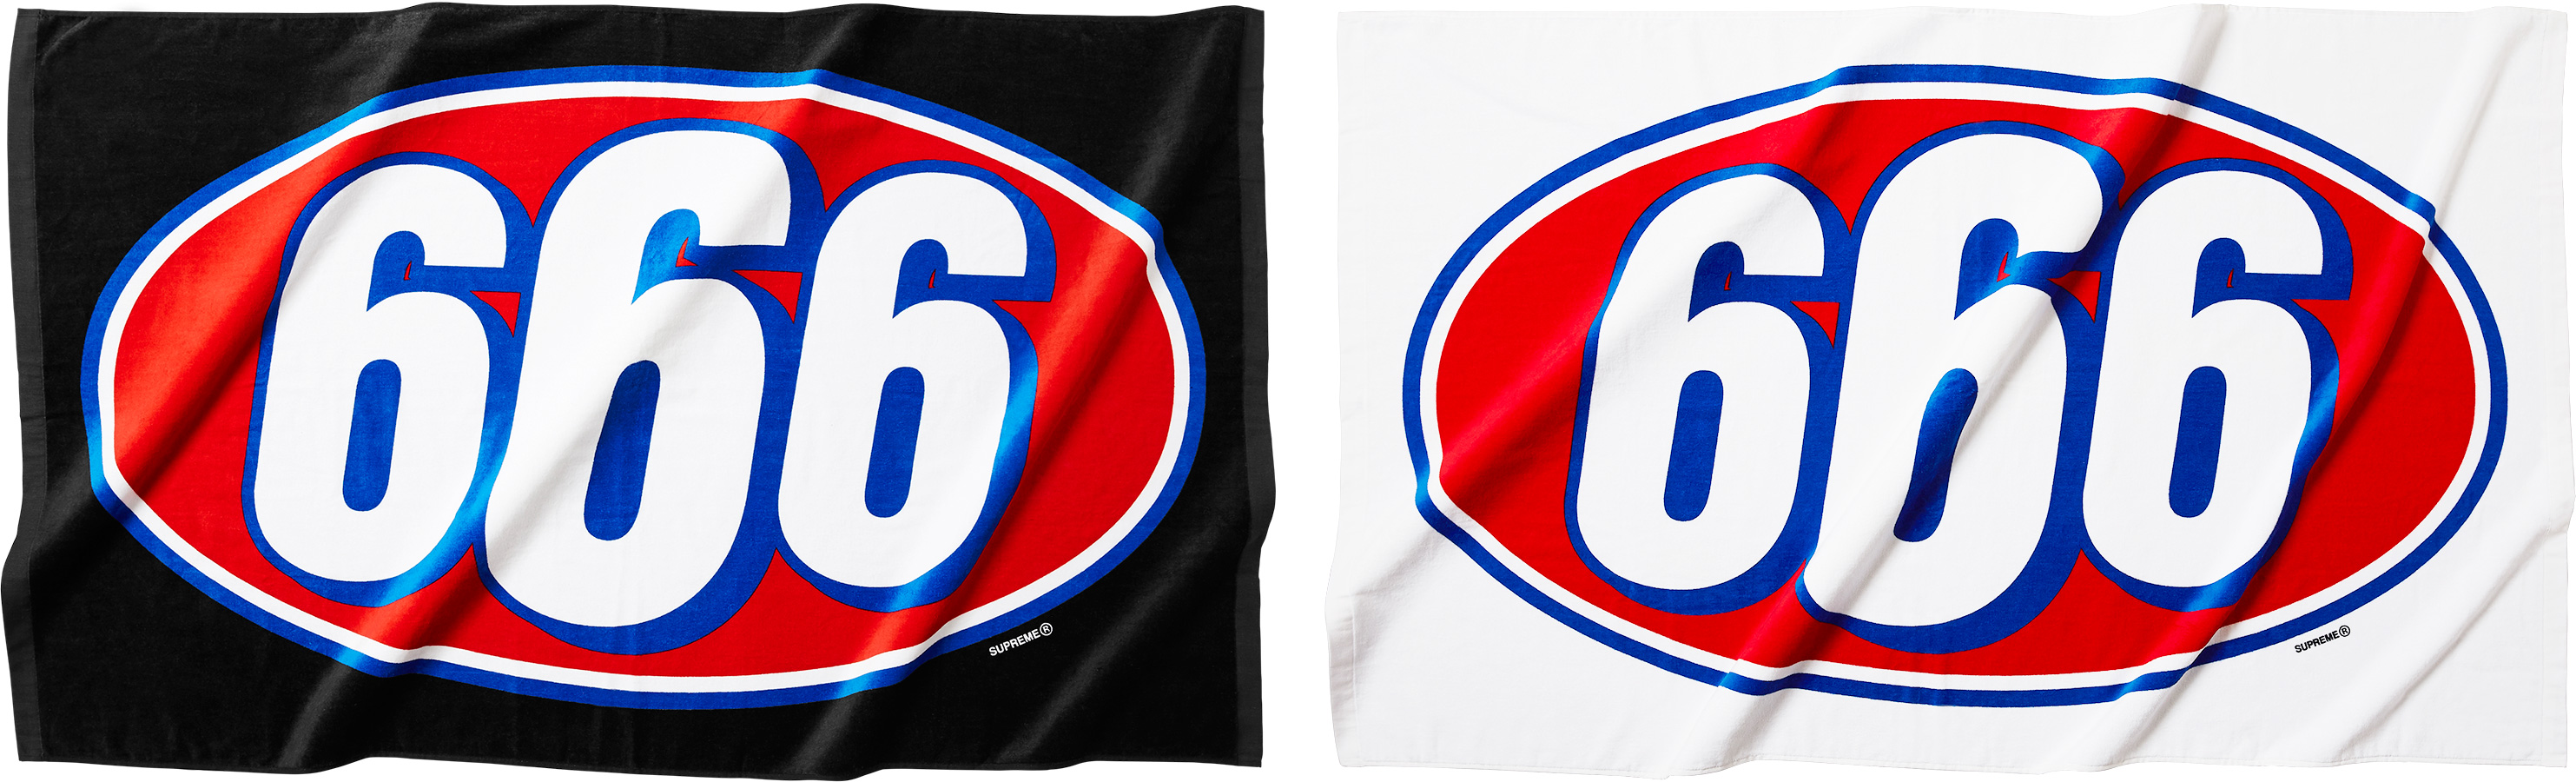 Supreme 666 Beach Towel